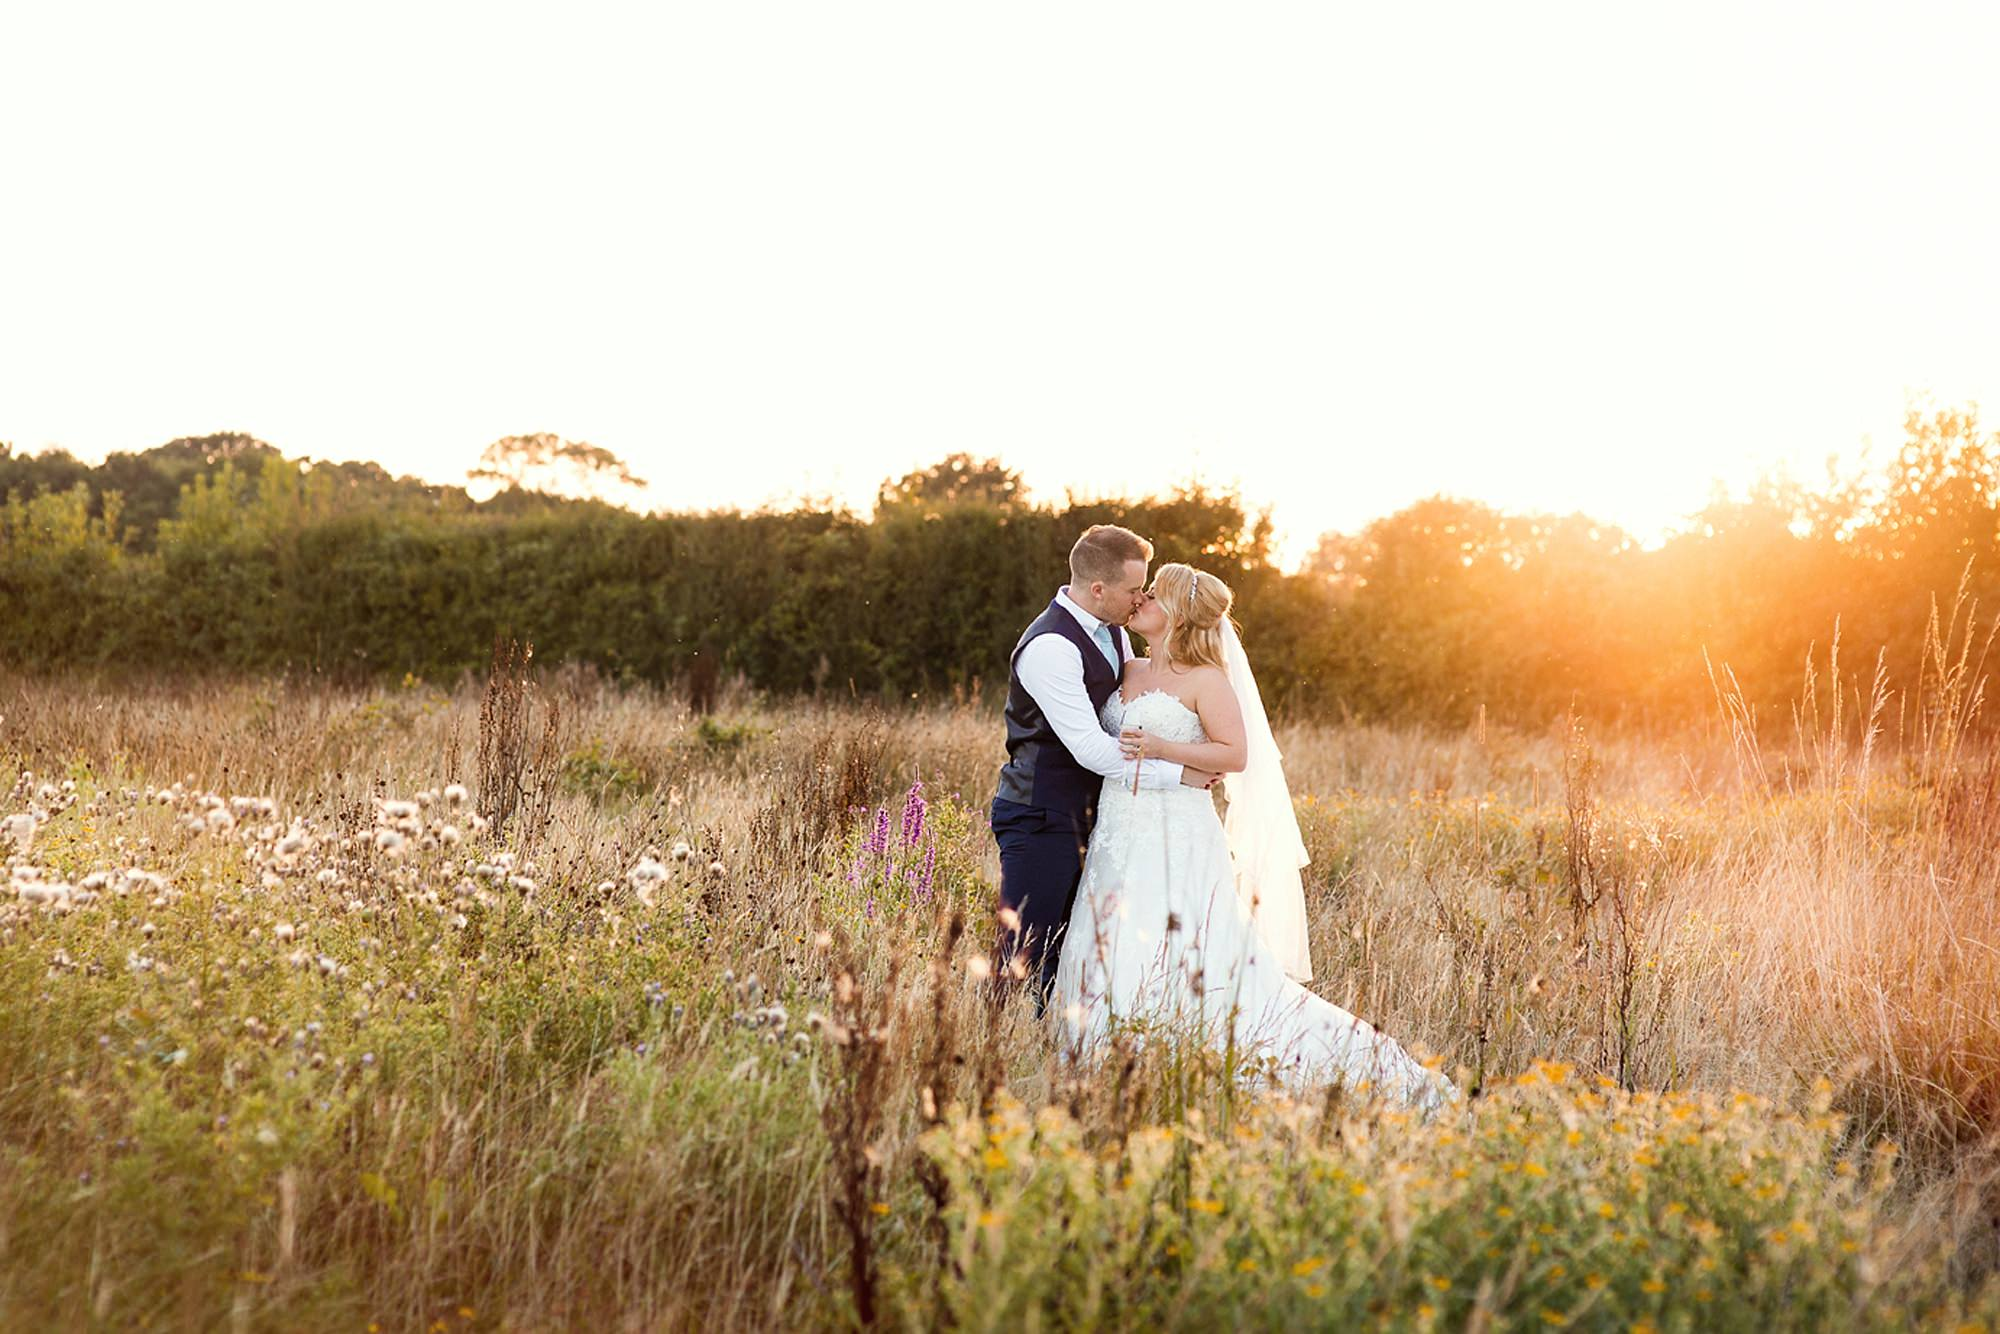 Old Greens Barn Newdigate wedding photography bride and groom at sunset